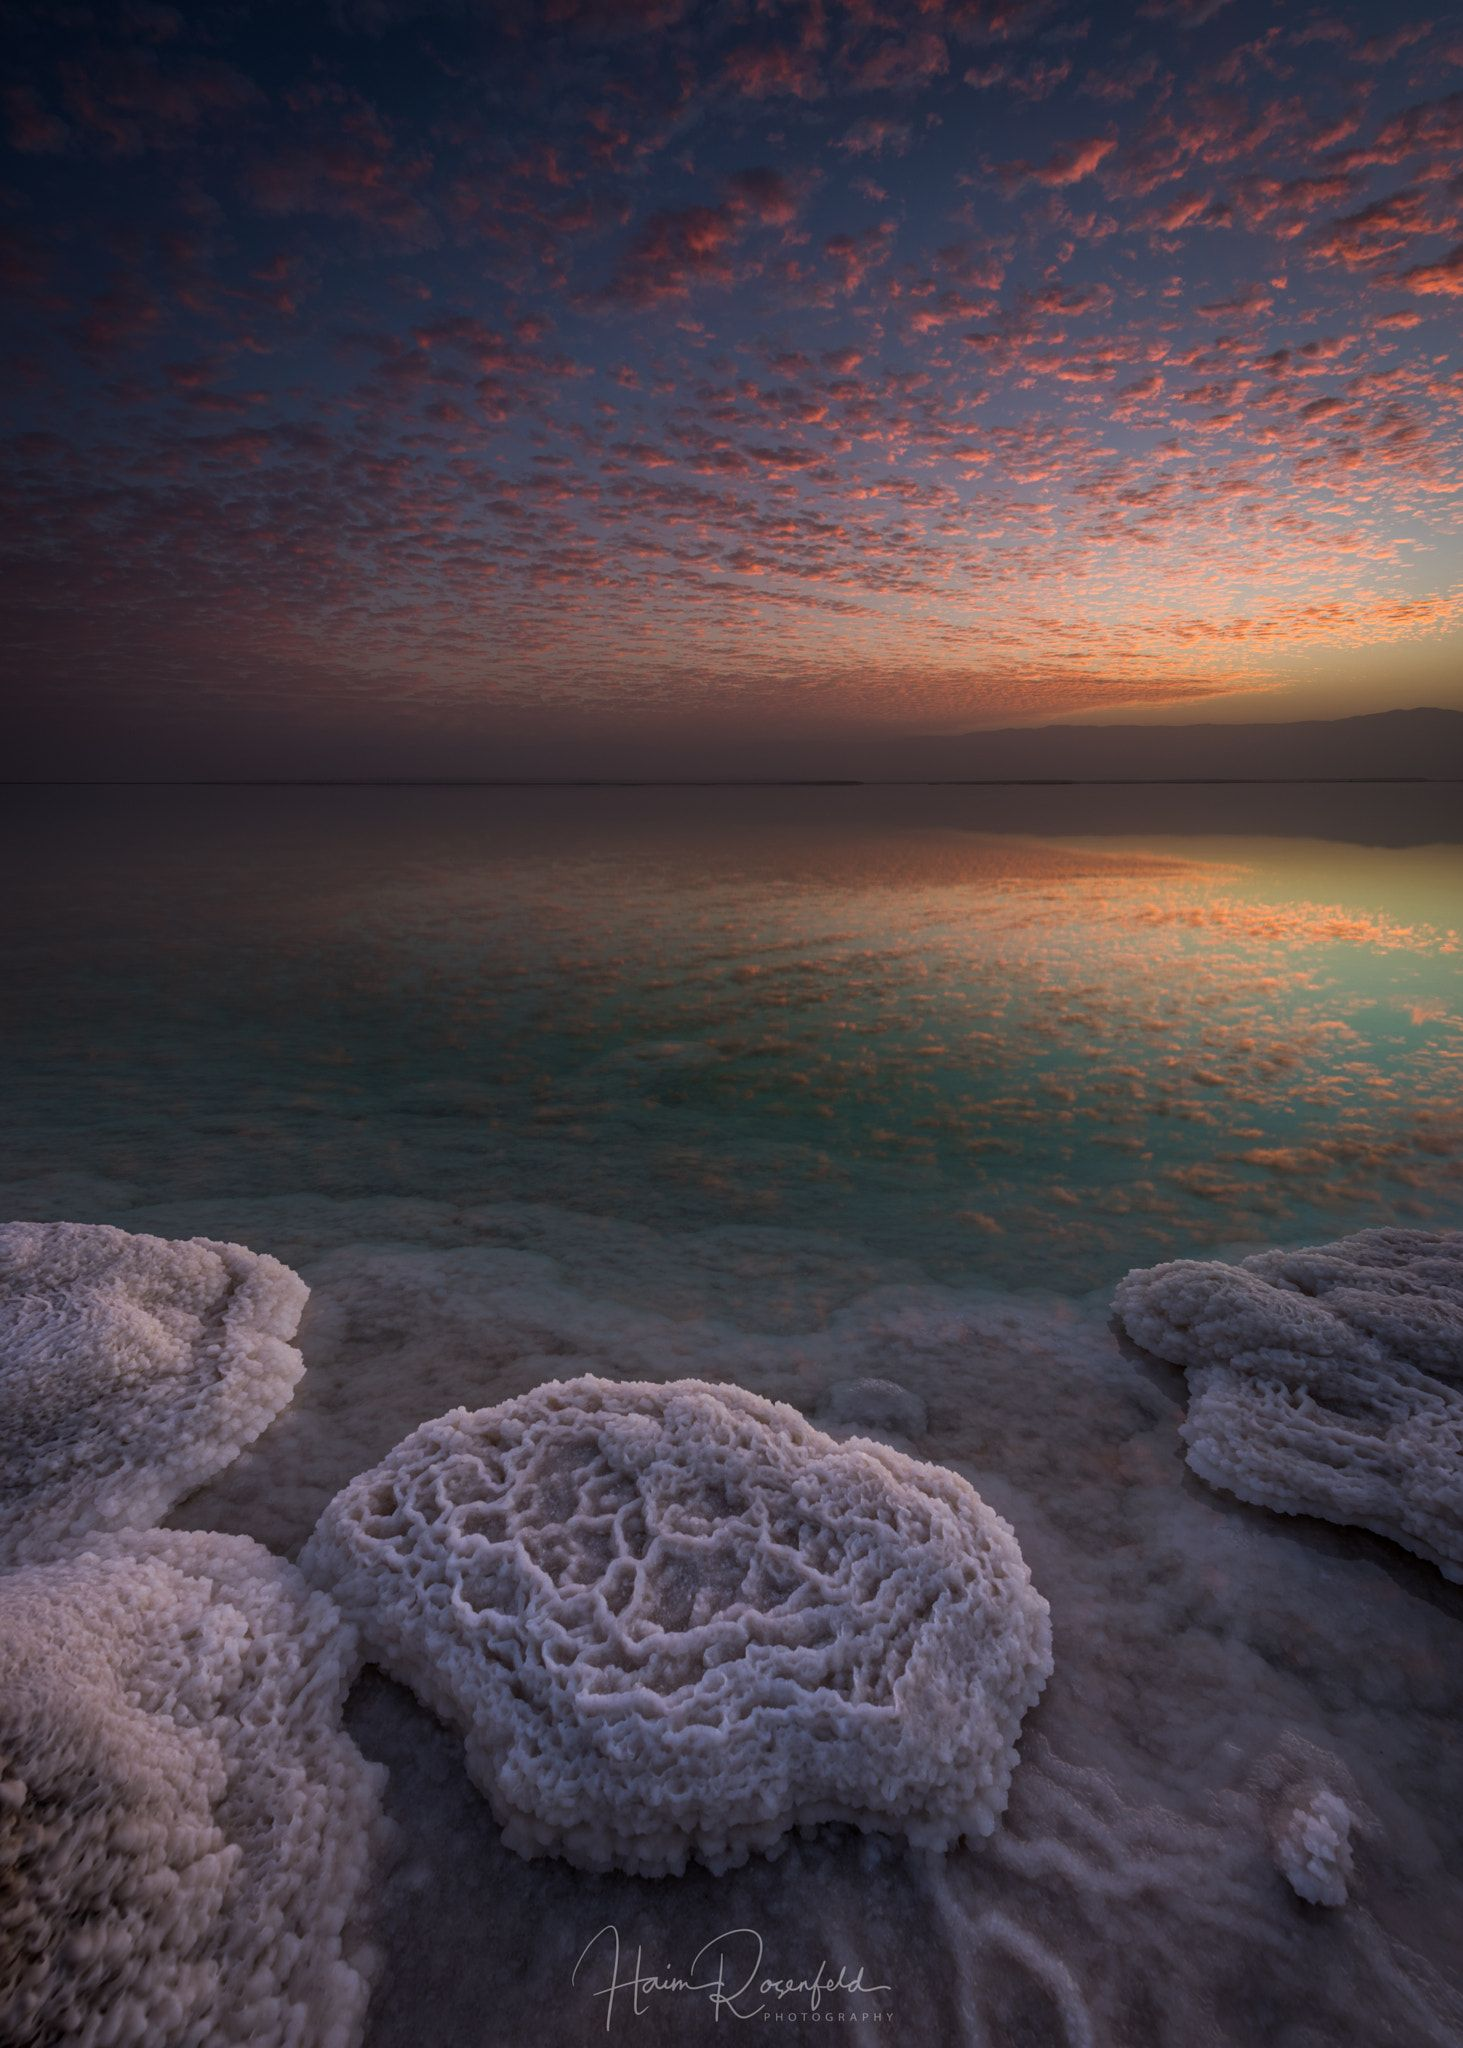 Genesis Salt Forms In Water Of Dead Sea Israel Cool Landscapes Beautiful Nature Amazing Photography